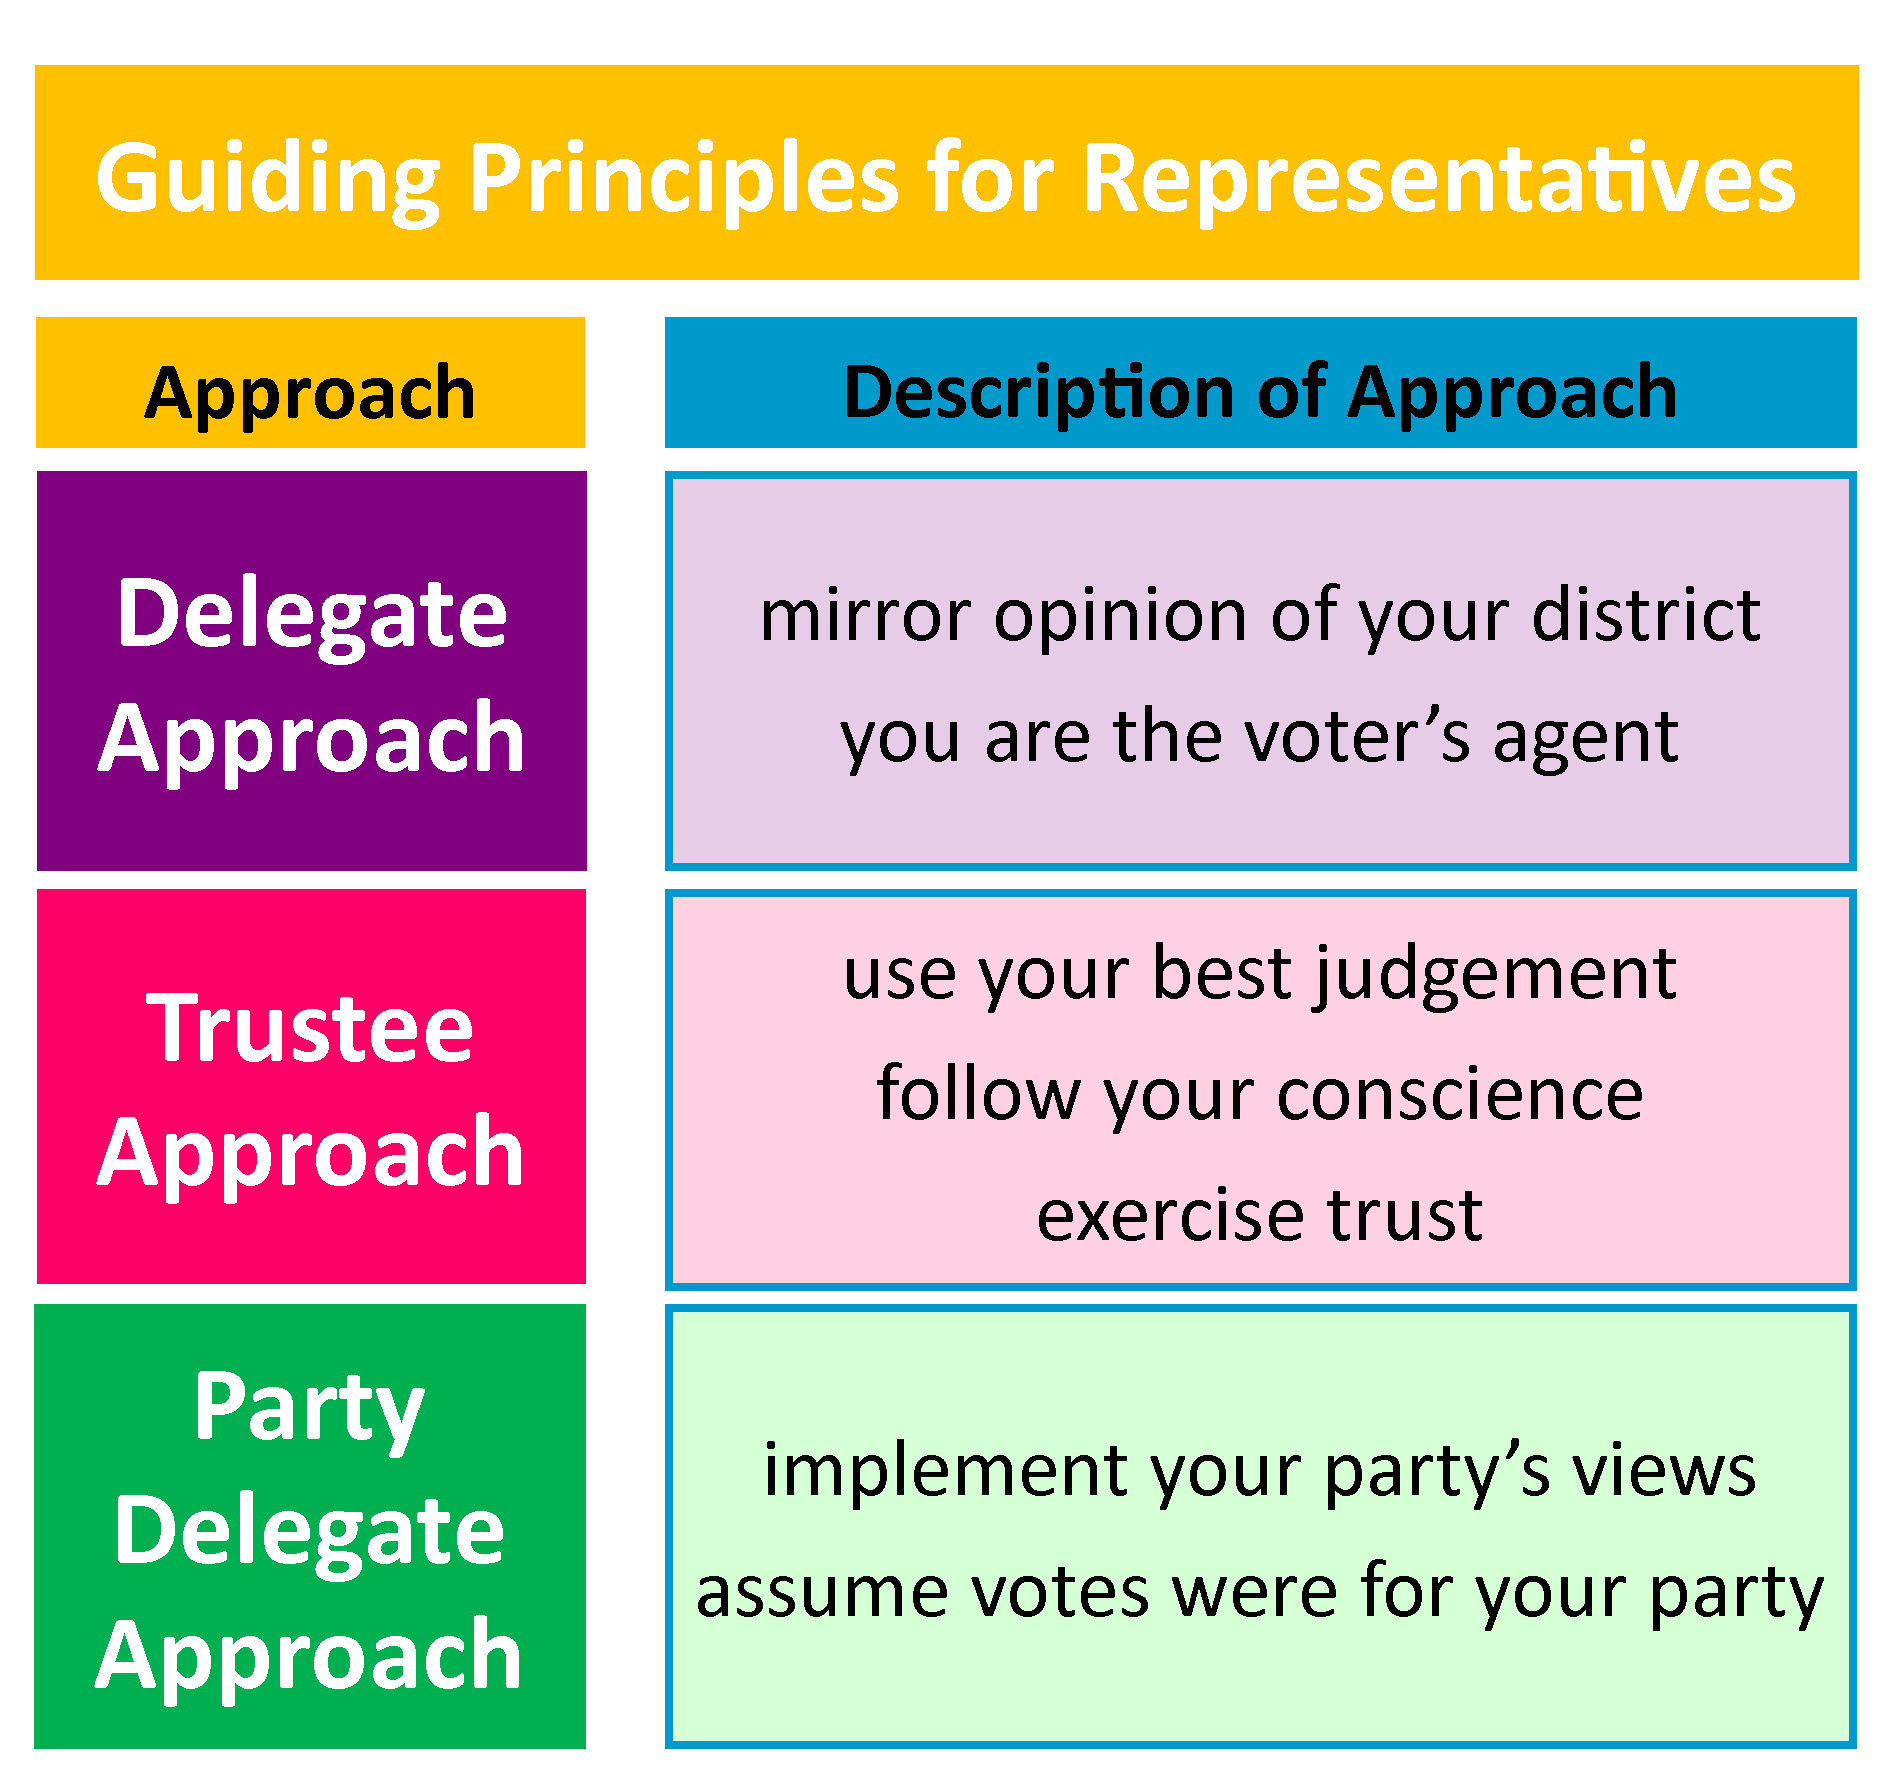 Chart showing 3 approaches for representative voting patterns including the delegate, trustee, and party delegate approaches.